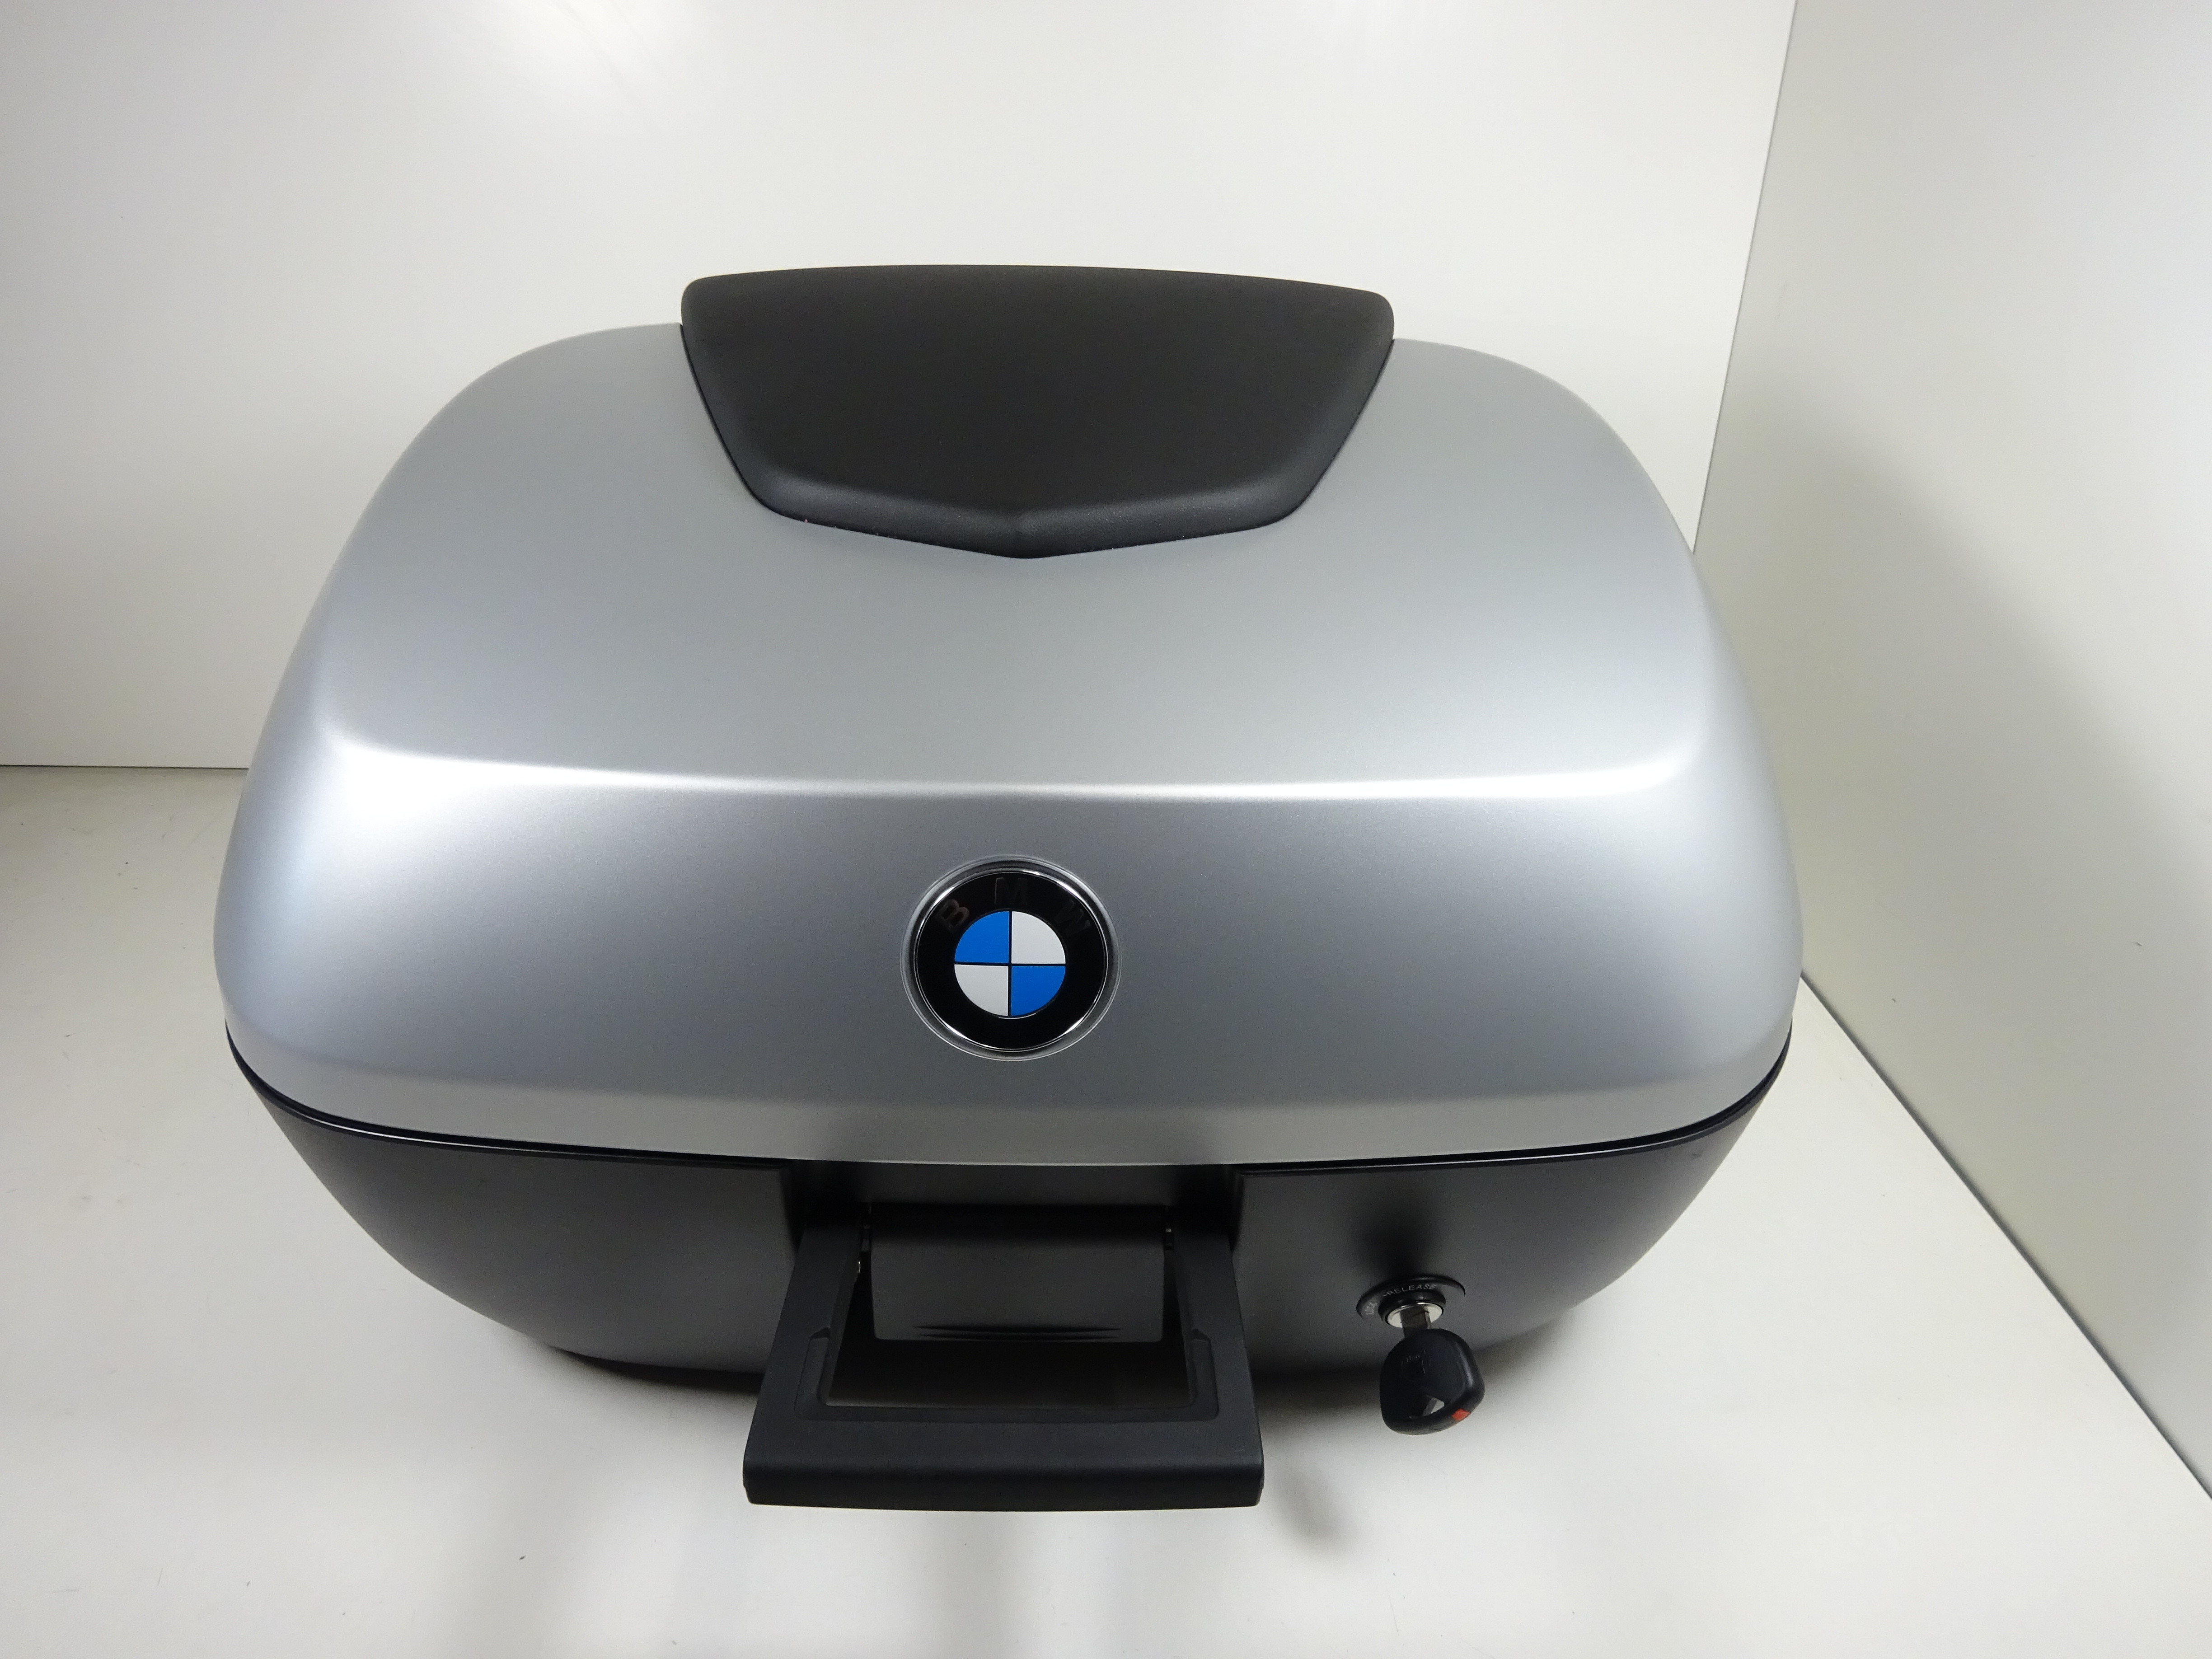 Hedendaags Top Box BMW R 1200 RT 2003-2009,2010-2013 | 201349248 | Motorparts FT-09